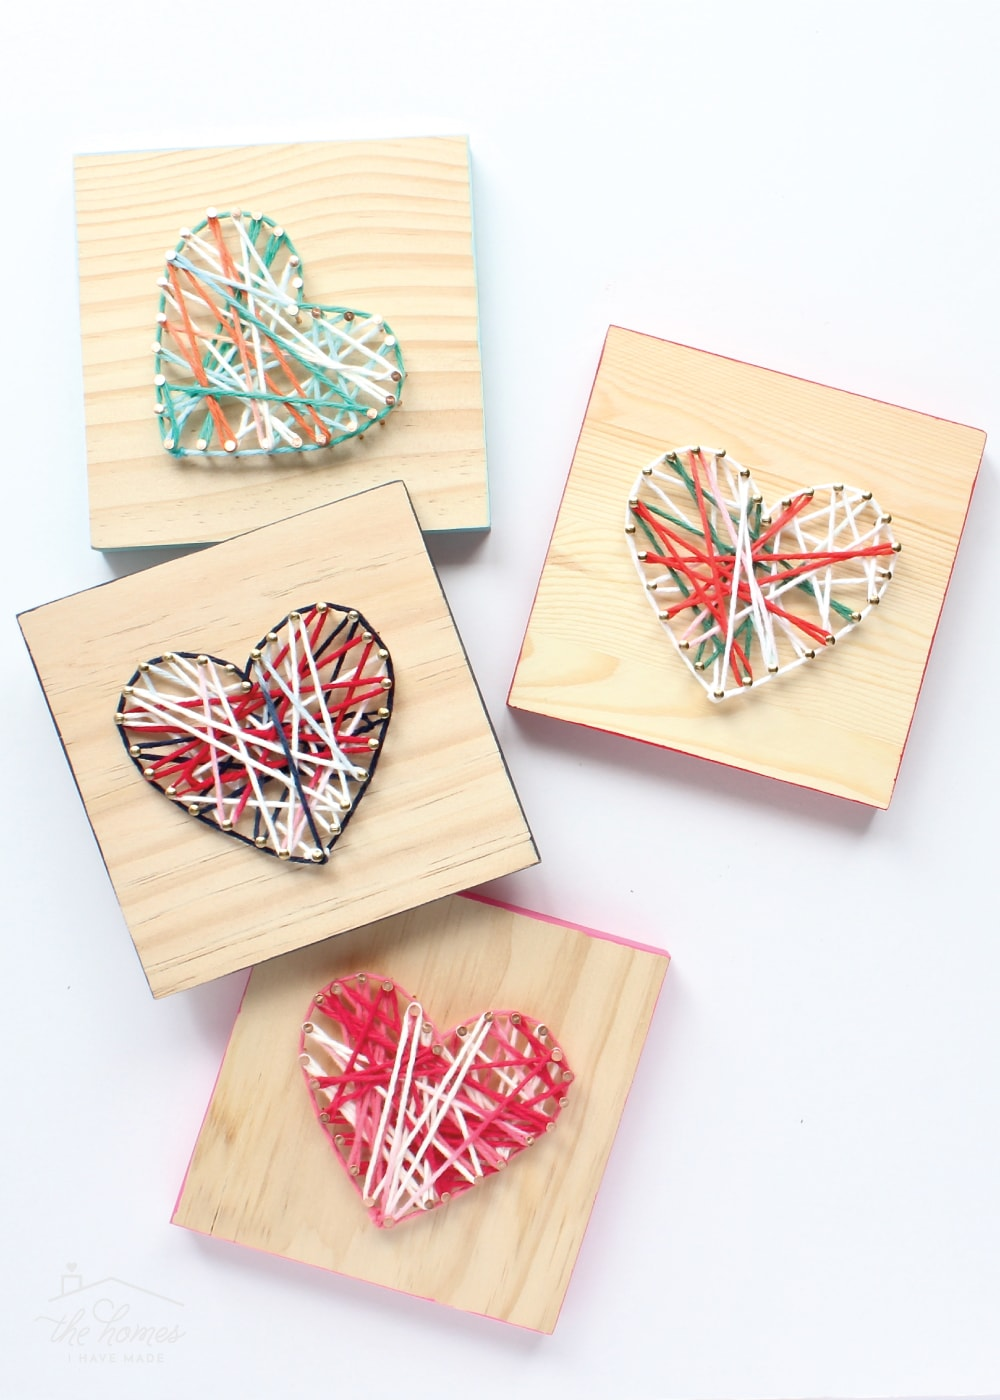 This easy DIY String Art project is the perfect kid craft or gift idea!